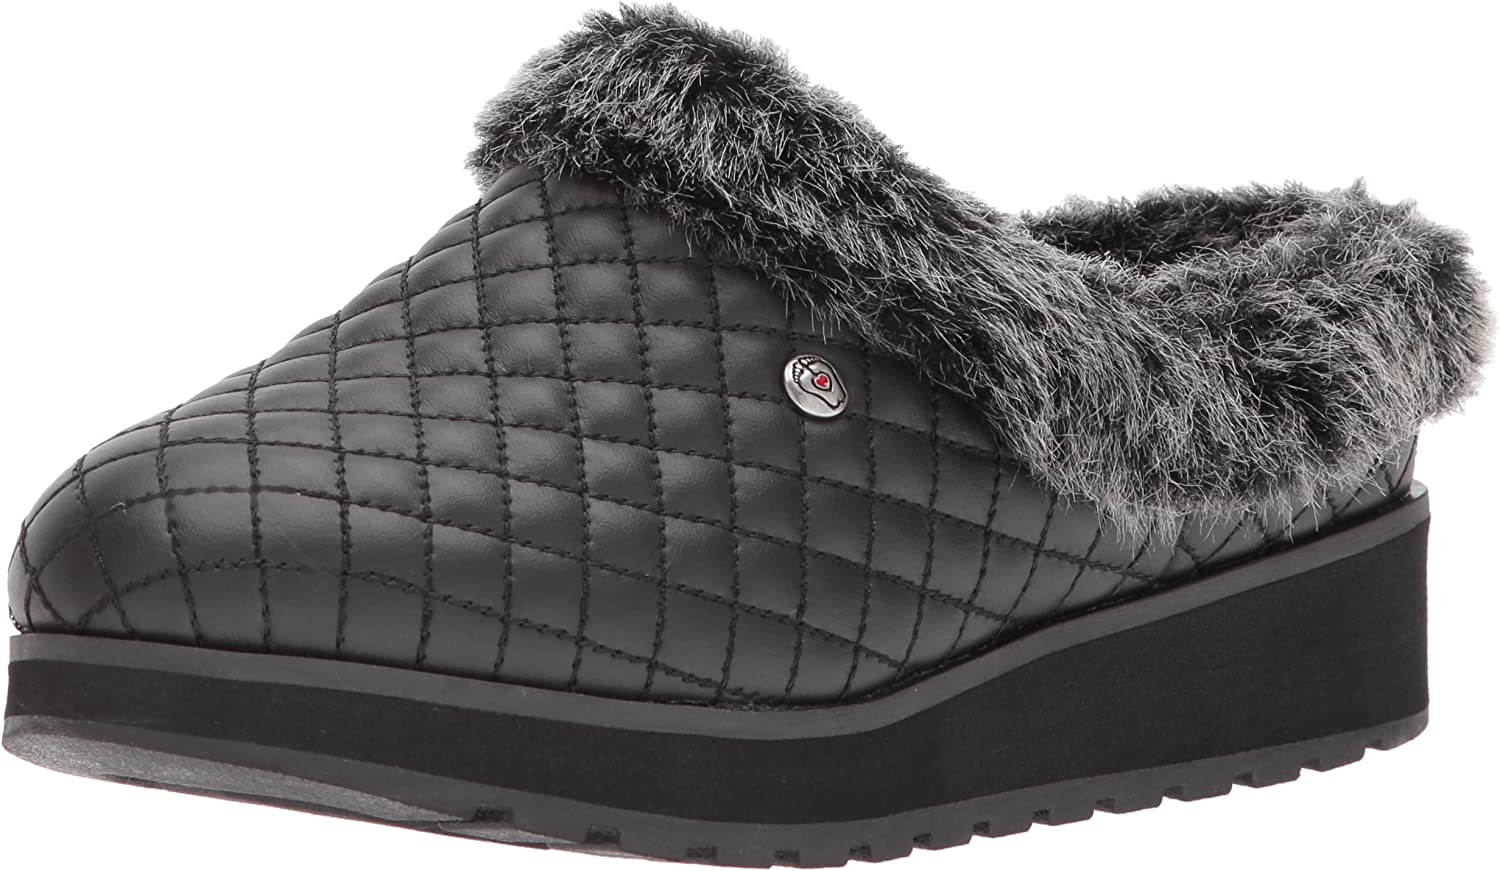 puerta papi Cerco  Amazon.com | Skechers BOBS Women's Keepsakes High-Quilted Clog | Mules &  Clogs